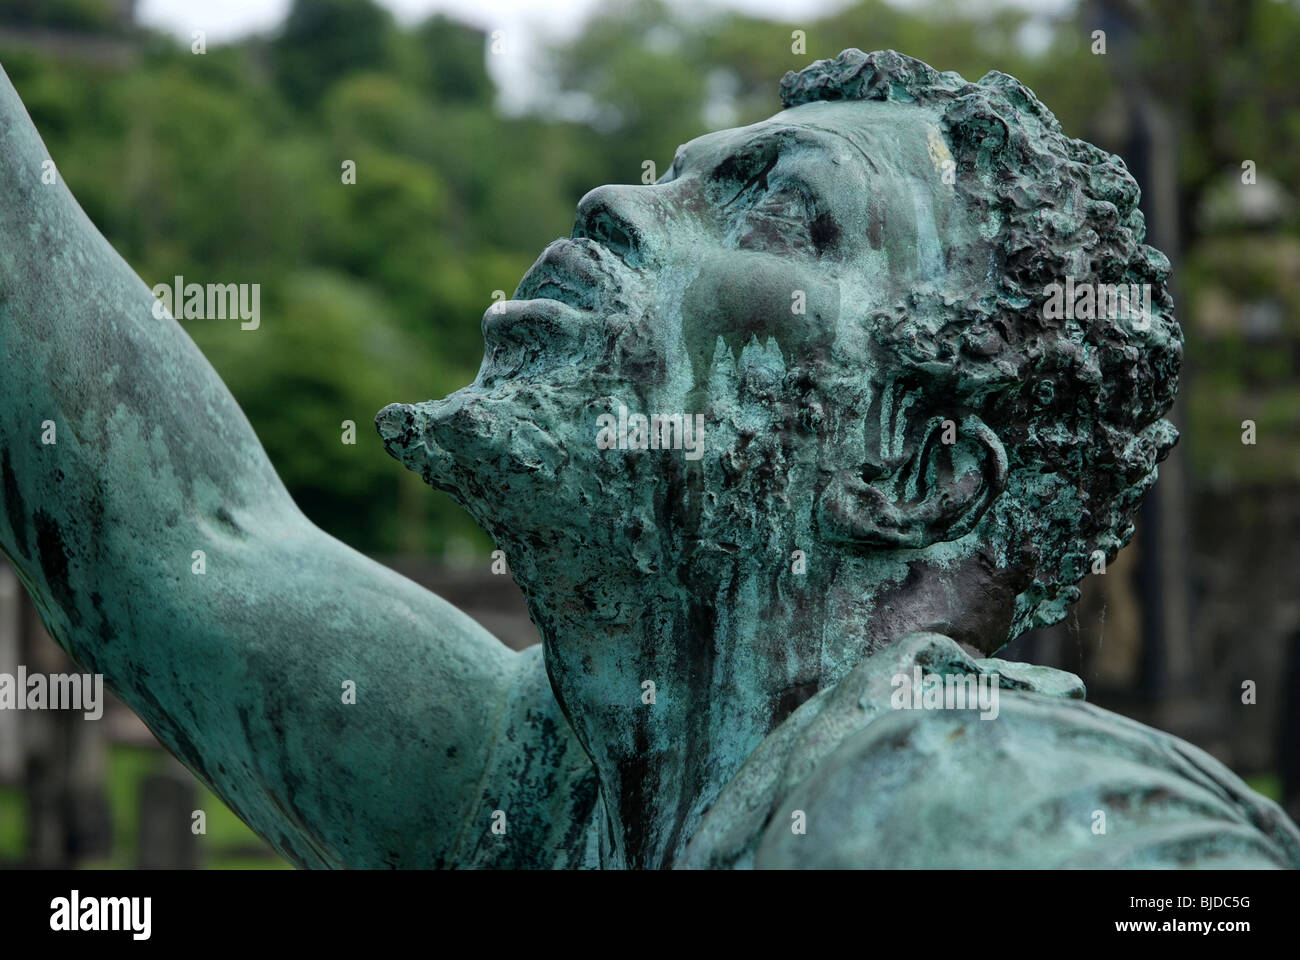 Detail showing the head of a slave from the memorial to Scottish-Americans who fought in the American Civil War, Stock Photo